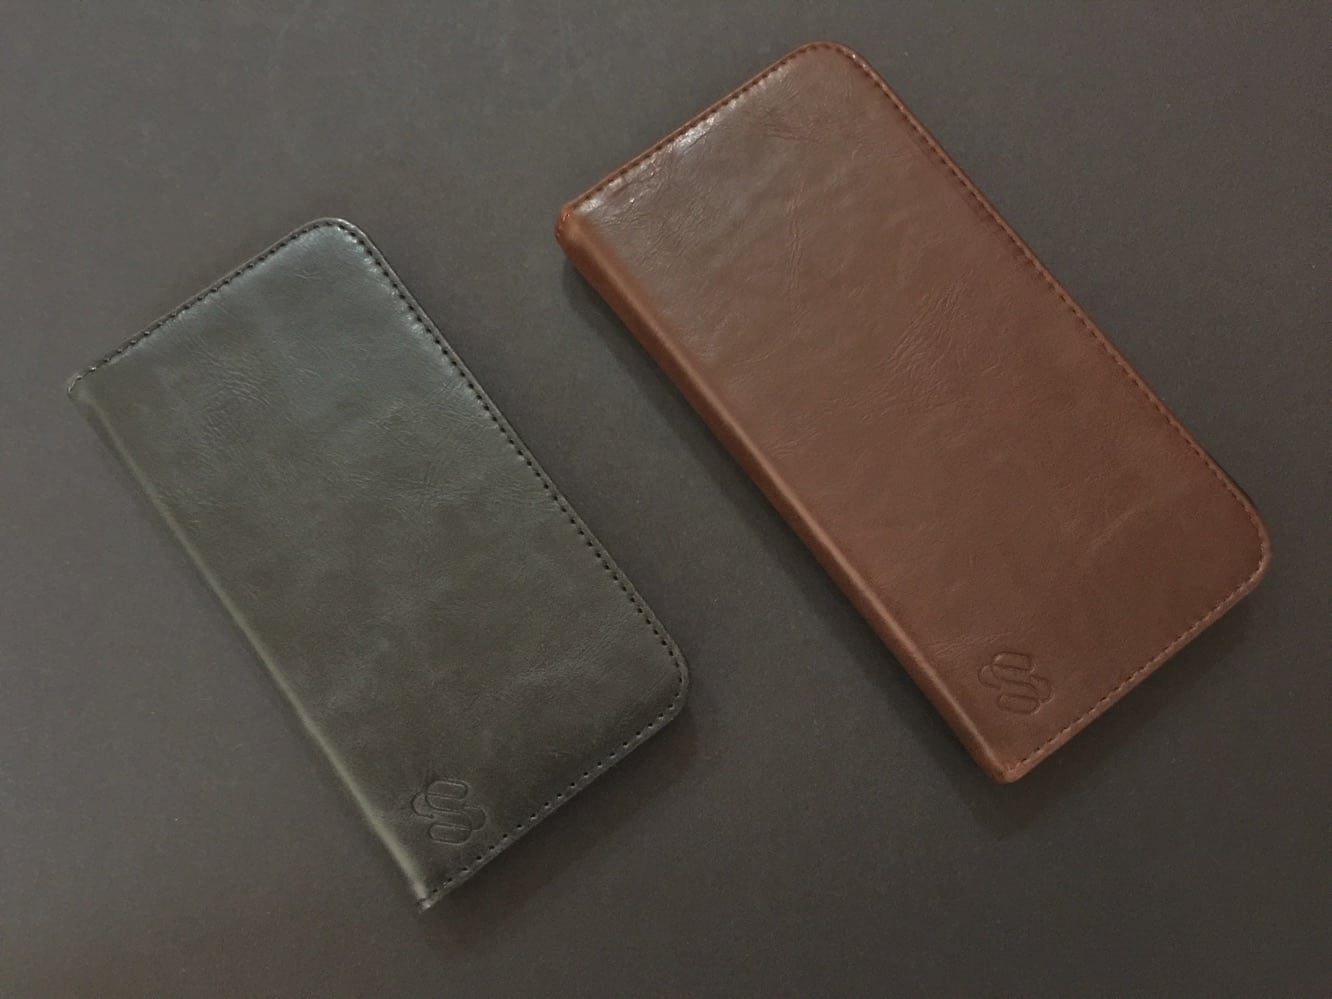 Review: Monk Magnet Wallet Case for iPhone 6 and iPhone 6 Plus